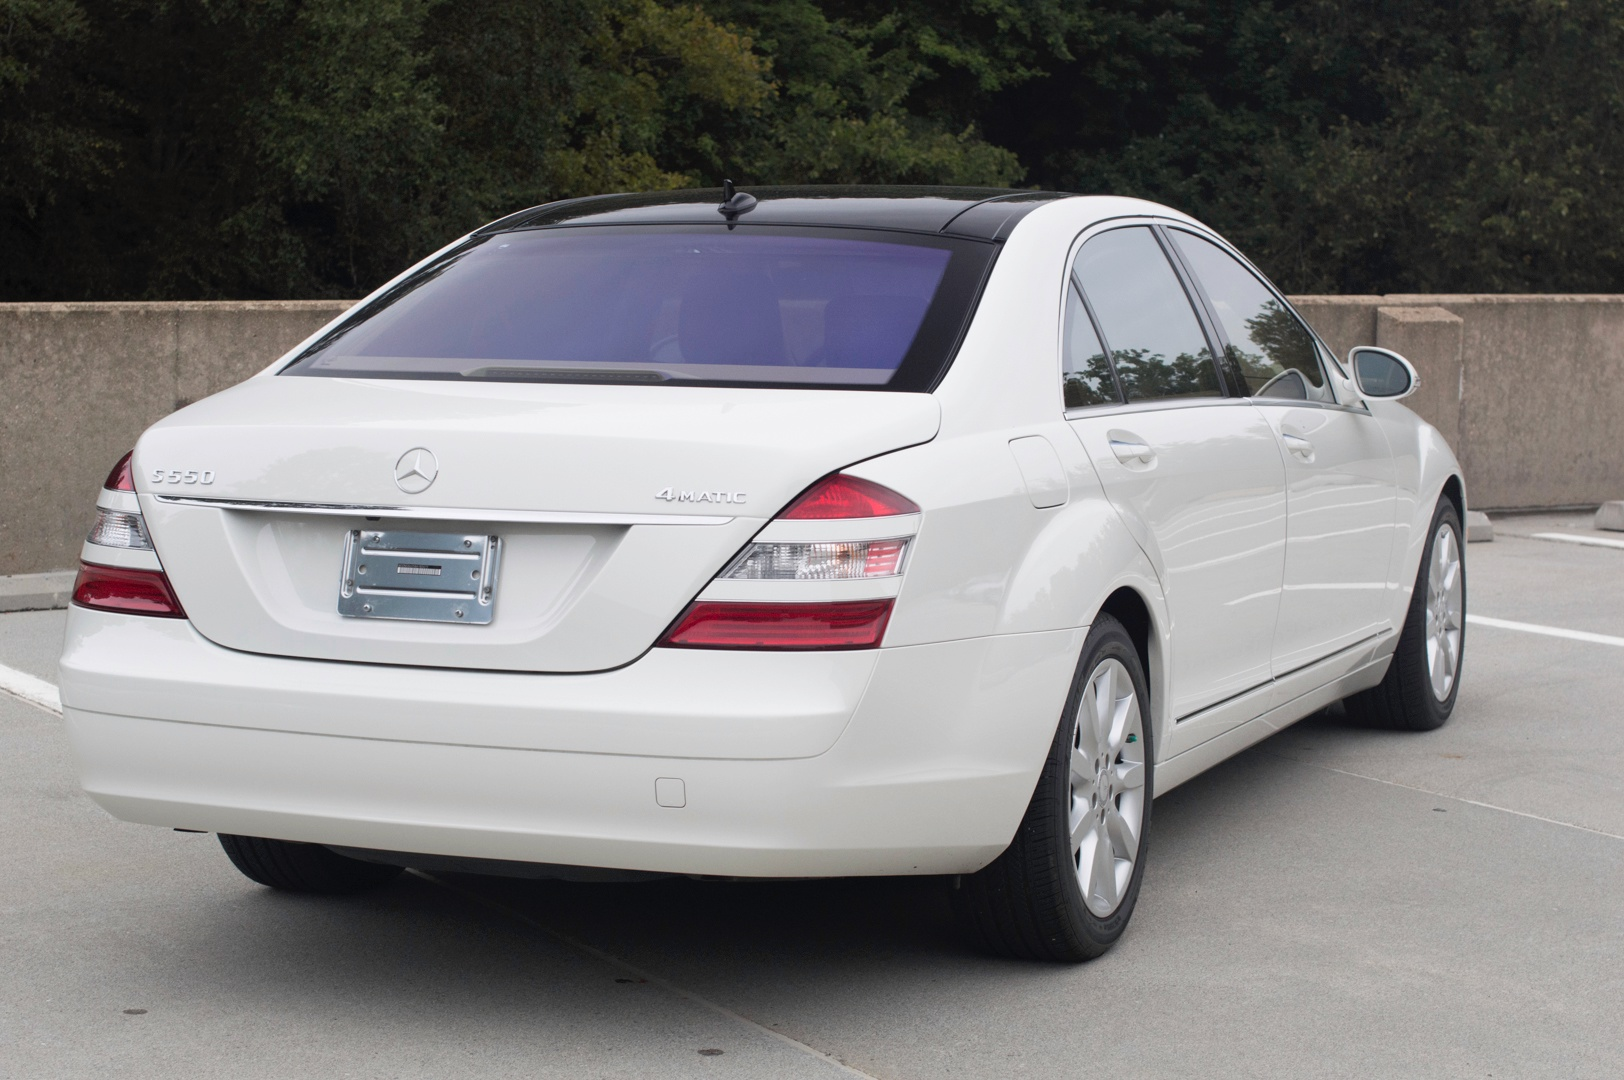 2008 mercedes benz s class s550 4matic stock p182472 for sale near vienna va va mercedes. Black Bedroom Furniture Sets. Home Design Ideas